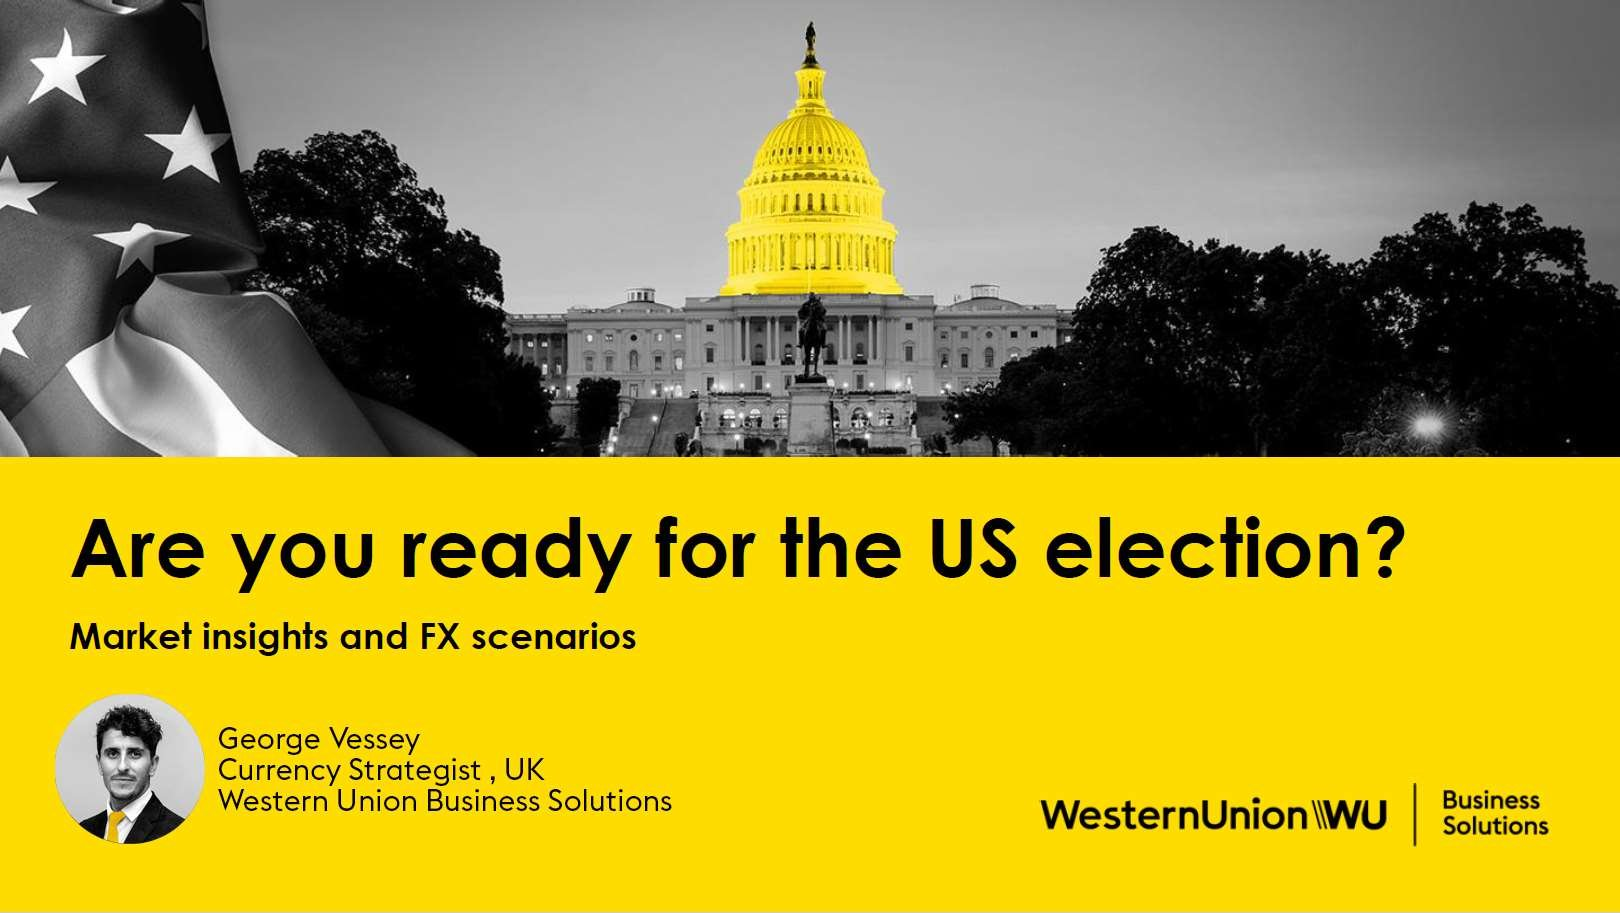 Are you ready for the US elections?